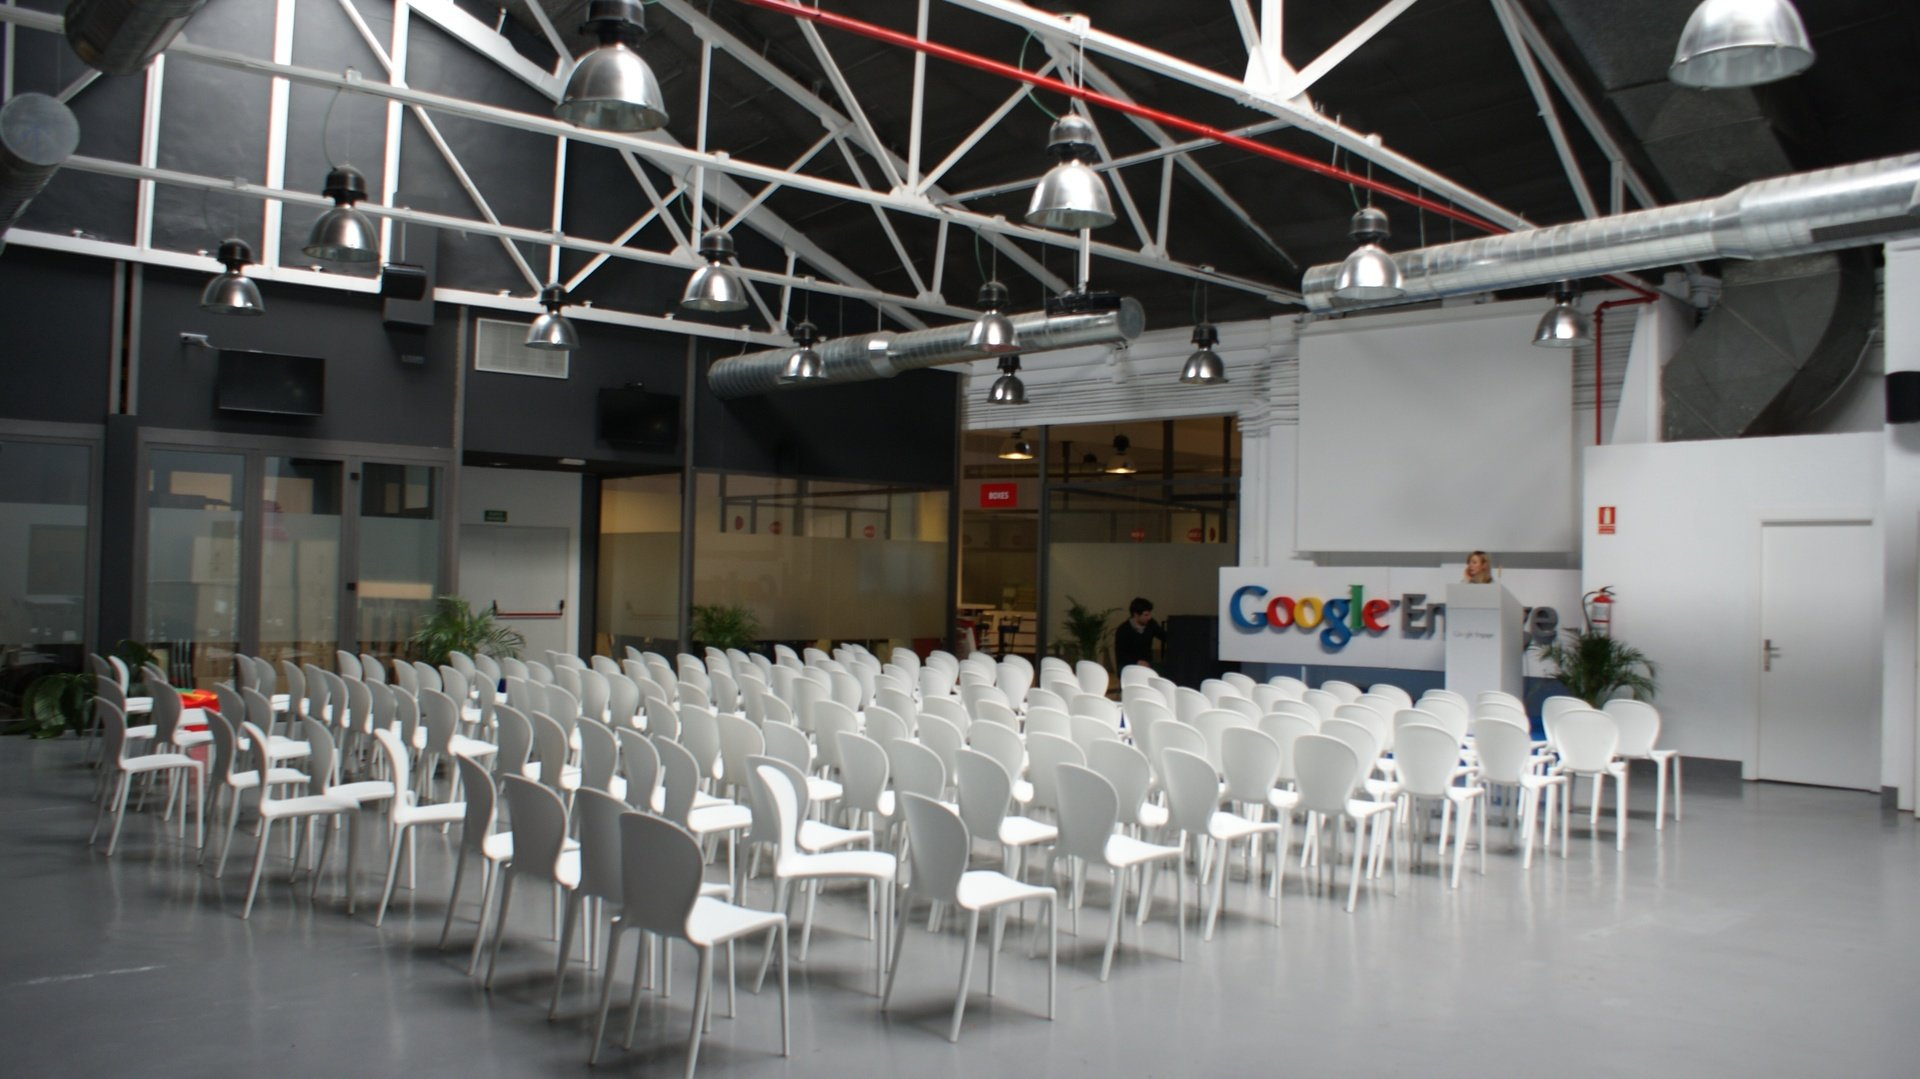 Madrid corporate event venues Coworking Space garAJE - Central Space image 0